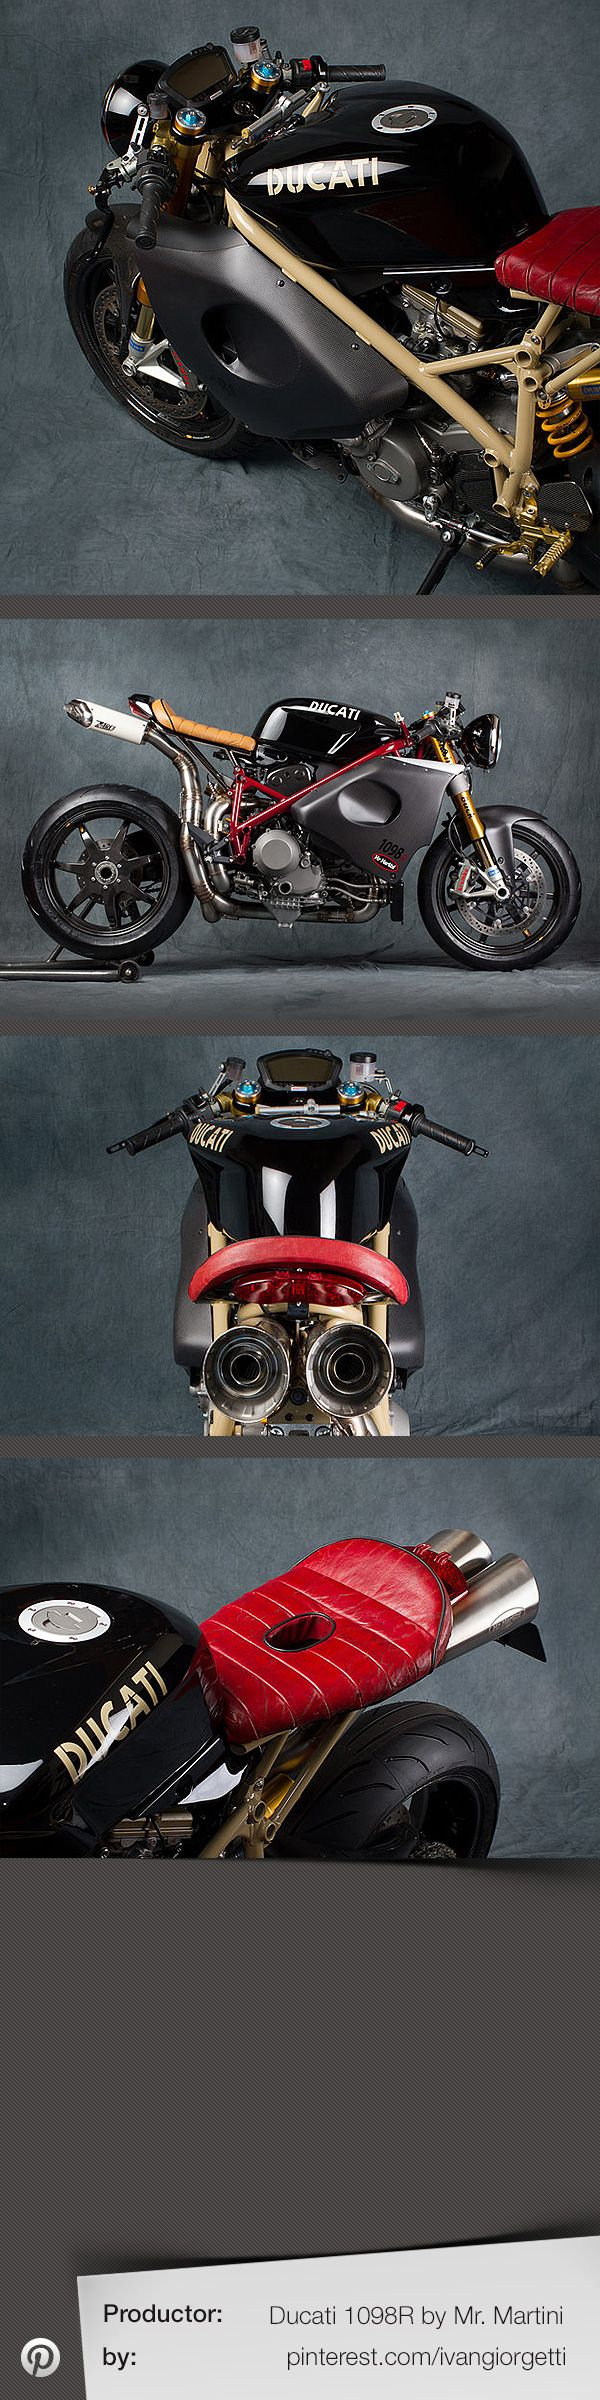 Classified moto kt600 the garage cafe - Ducati 1098r By Mr Martini Custom Motorcycle Caferacer Holy Balls This